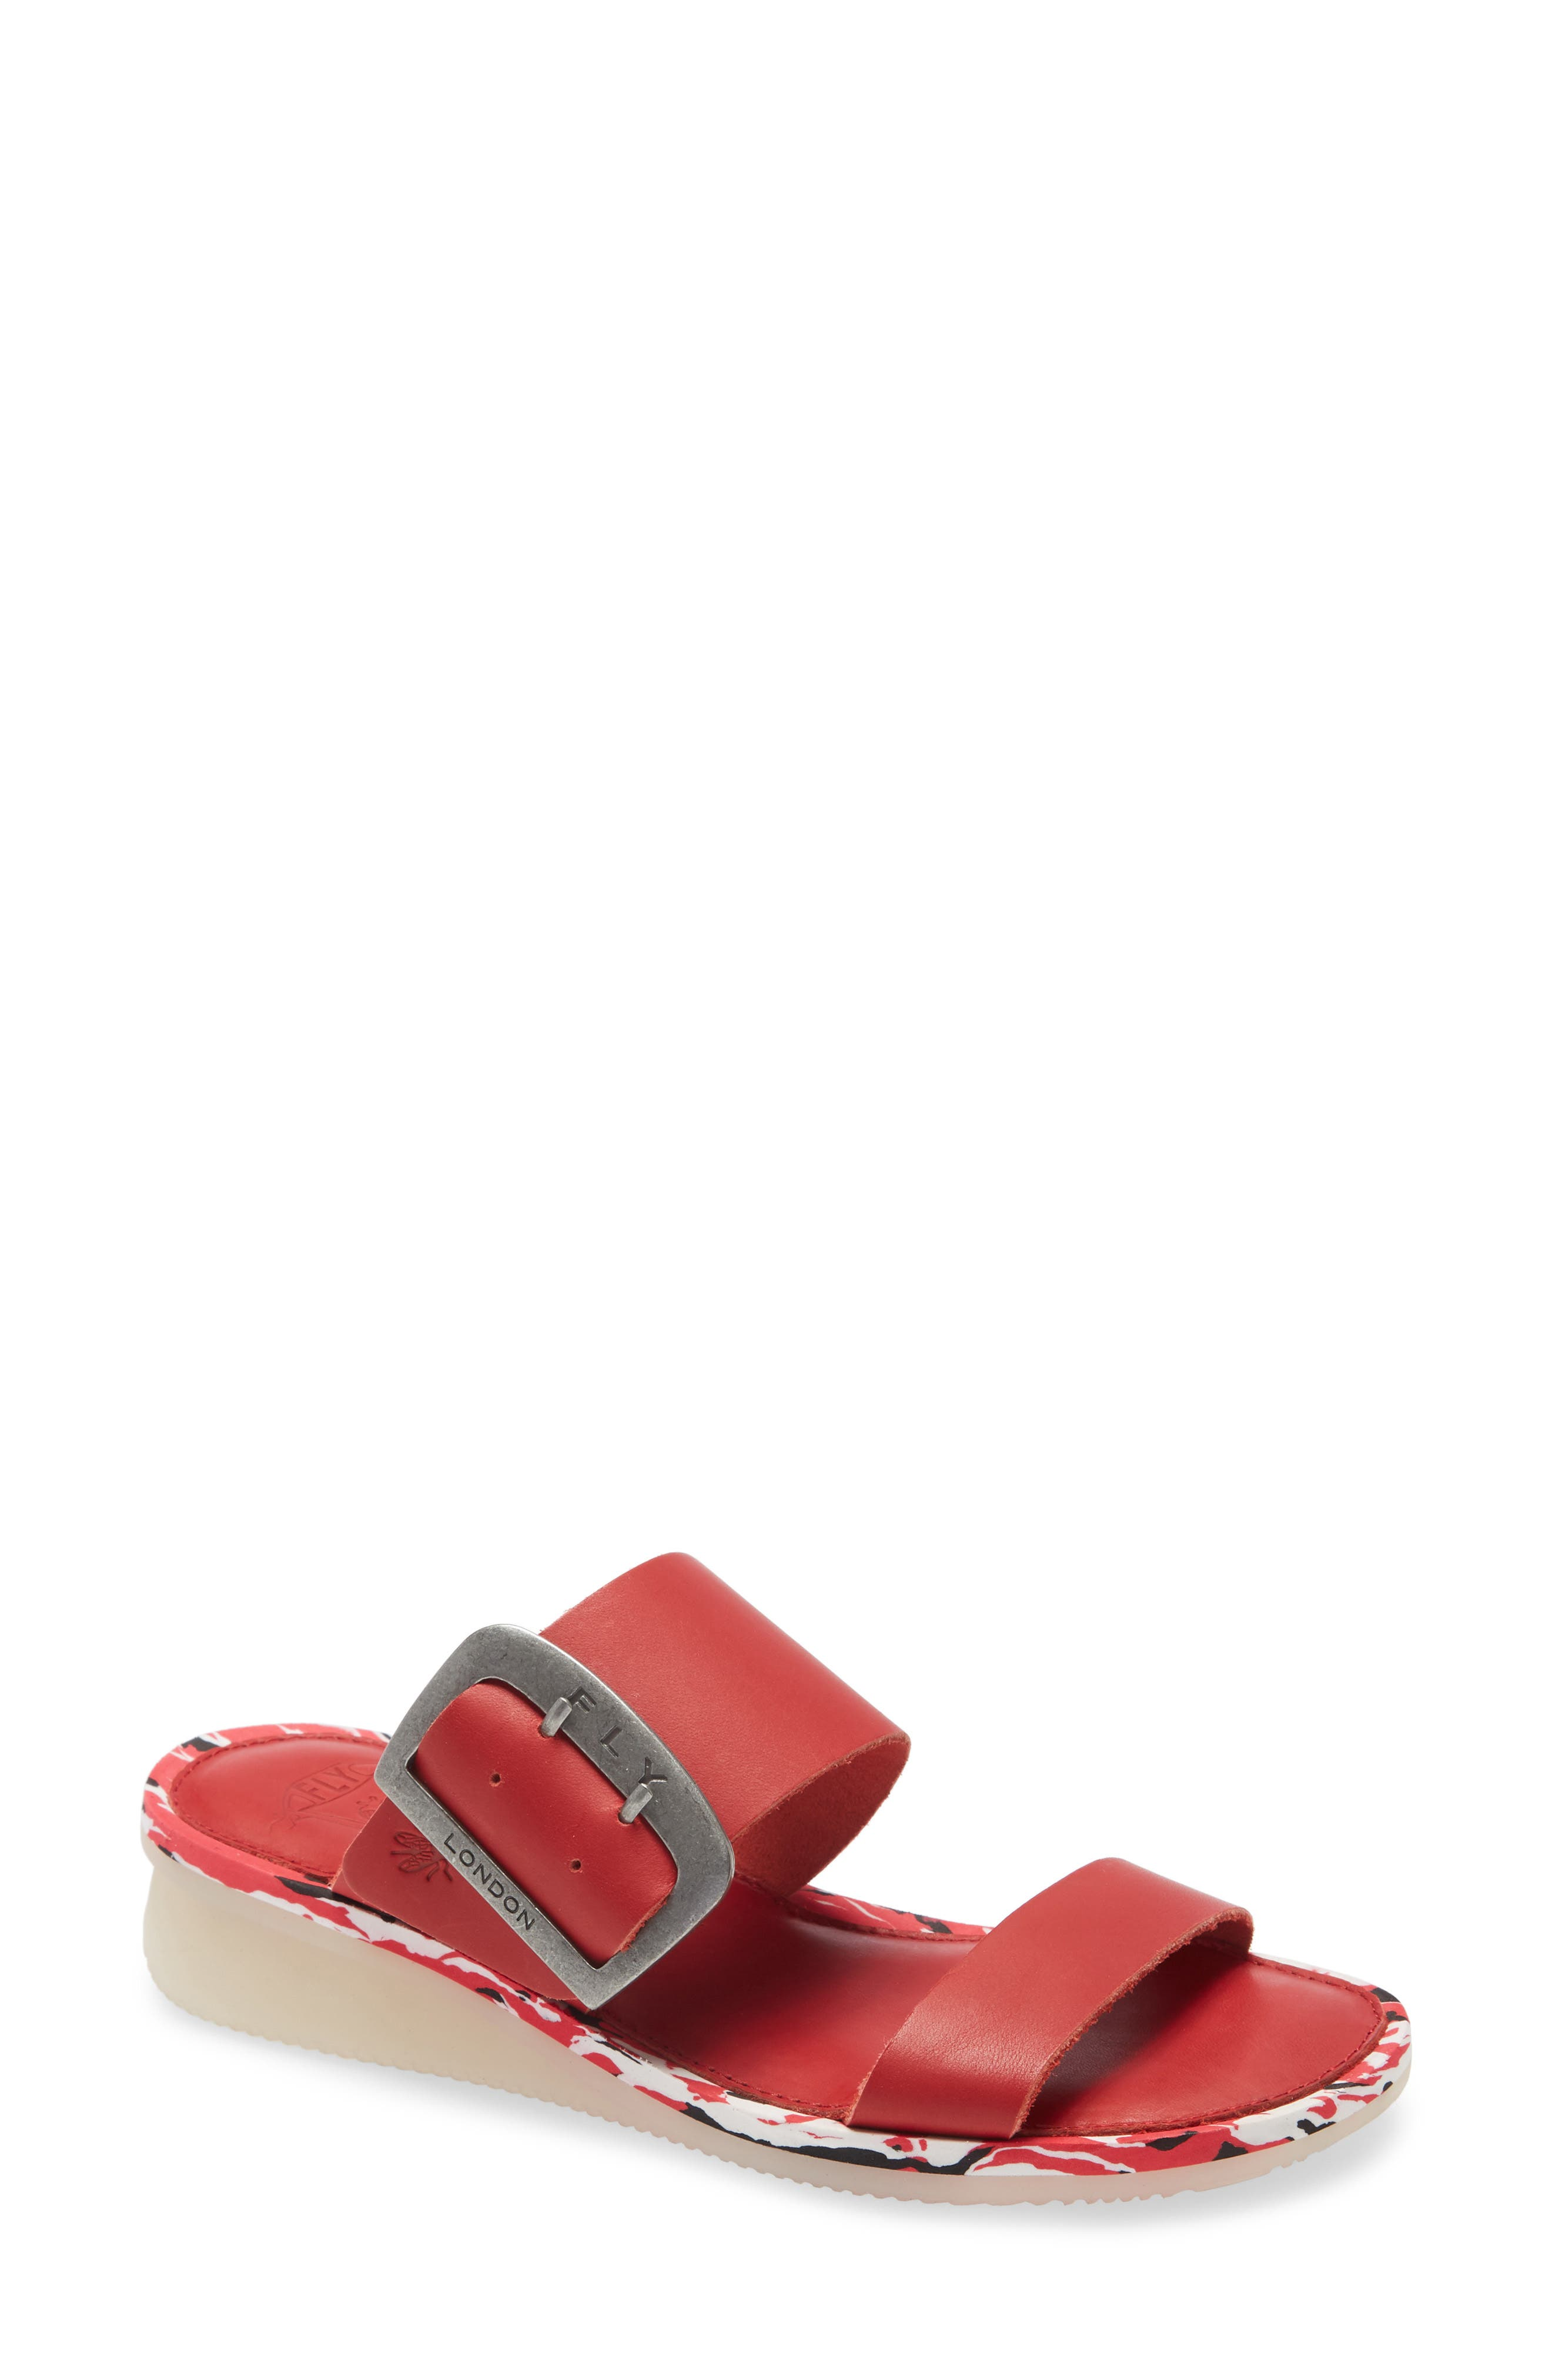 An oversized, logo-etched buckle secures the wide arch strap of a double-band slide sandal lifted slightly with a low wedge. Style Name: Fly London Cape Slide Sandal (Women). Style Number: 6002355. Available in stores.